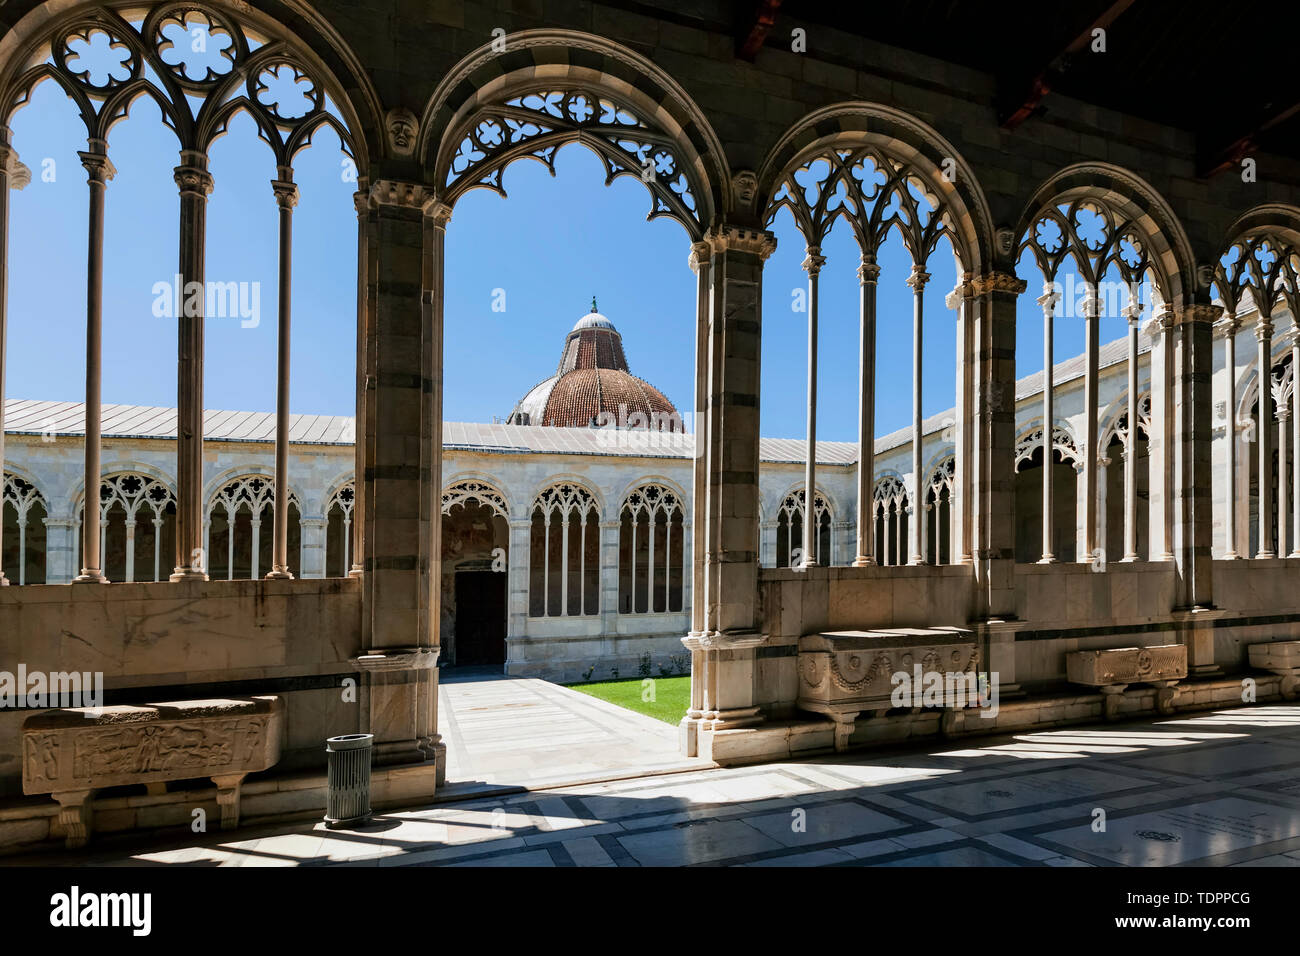 View of the Baptistry through the arches of Camposanto Monumentale (Campo Santo, Monumental Cemetery); Pisa, Italy Stock Photo